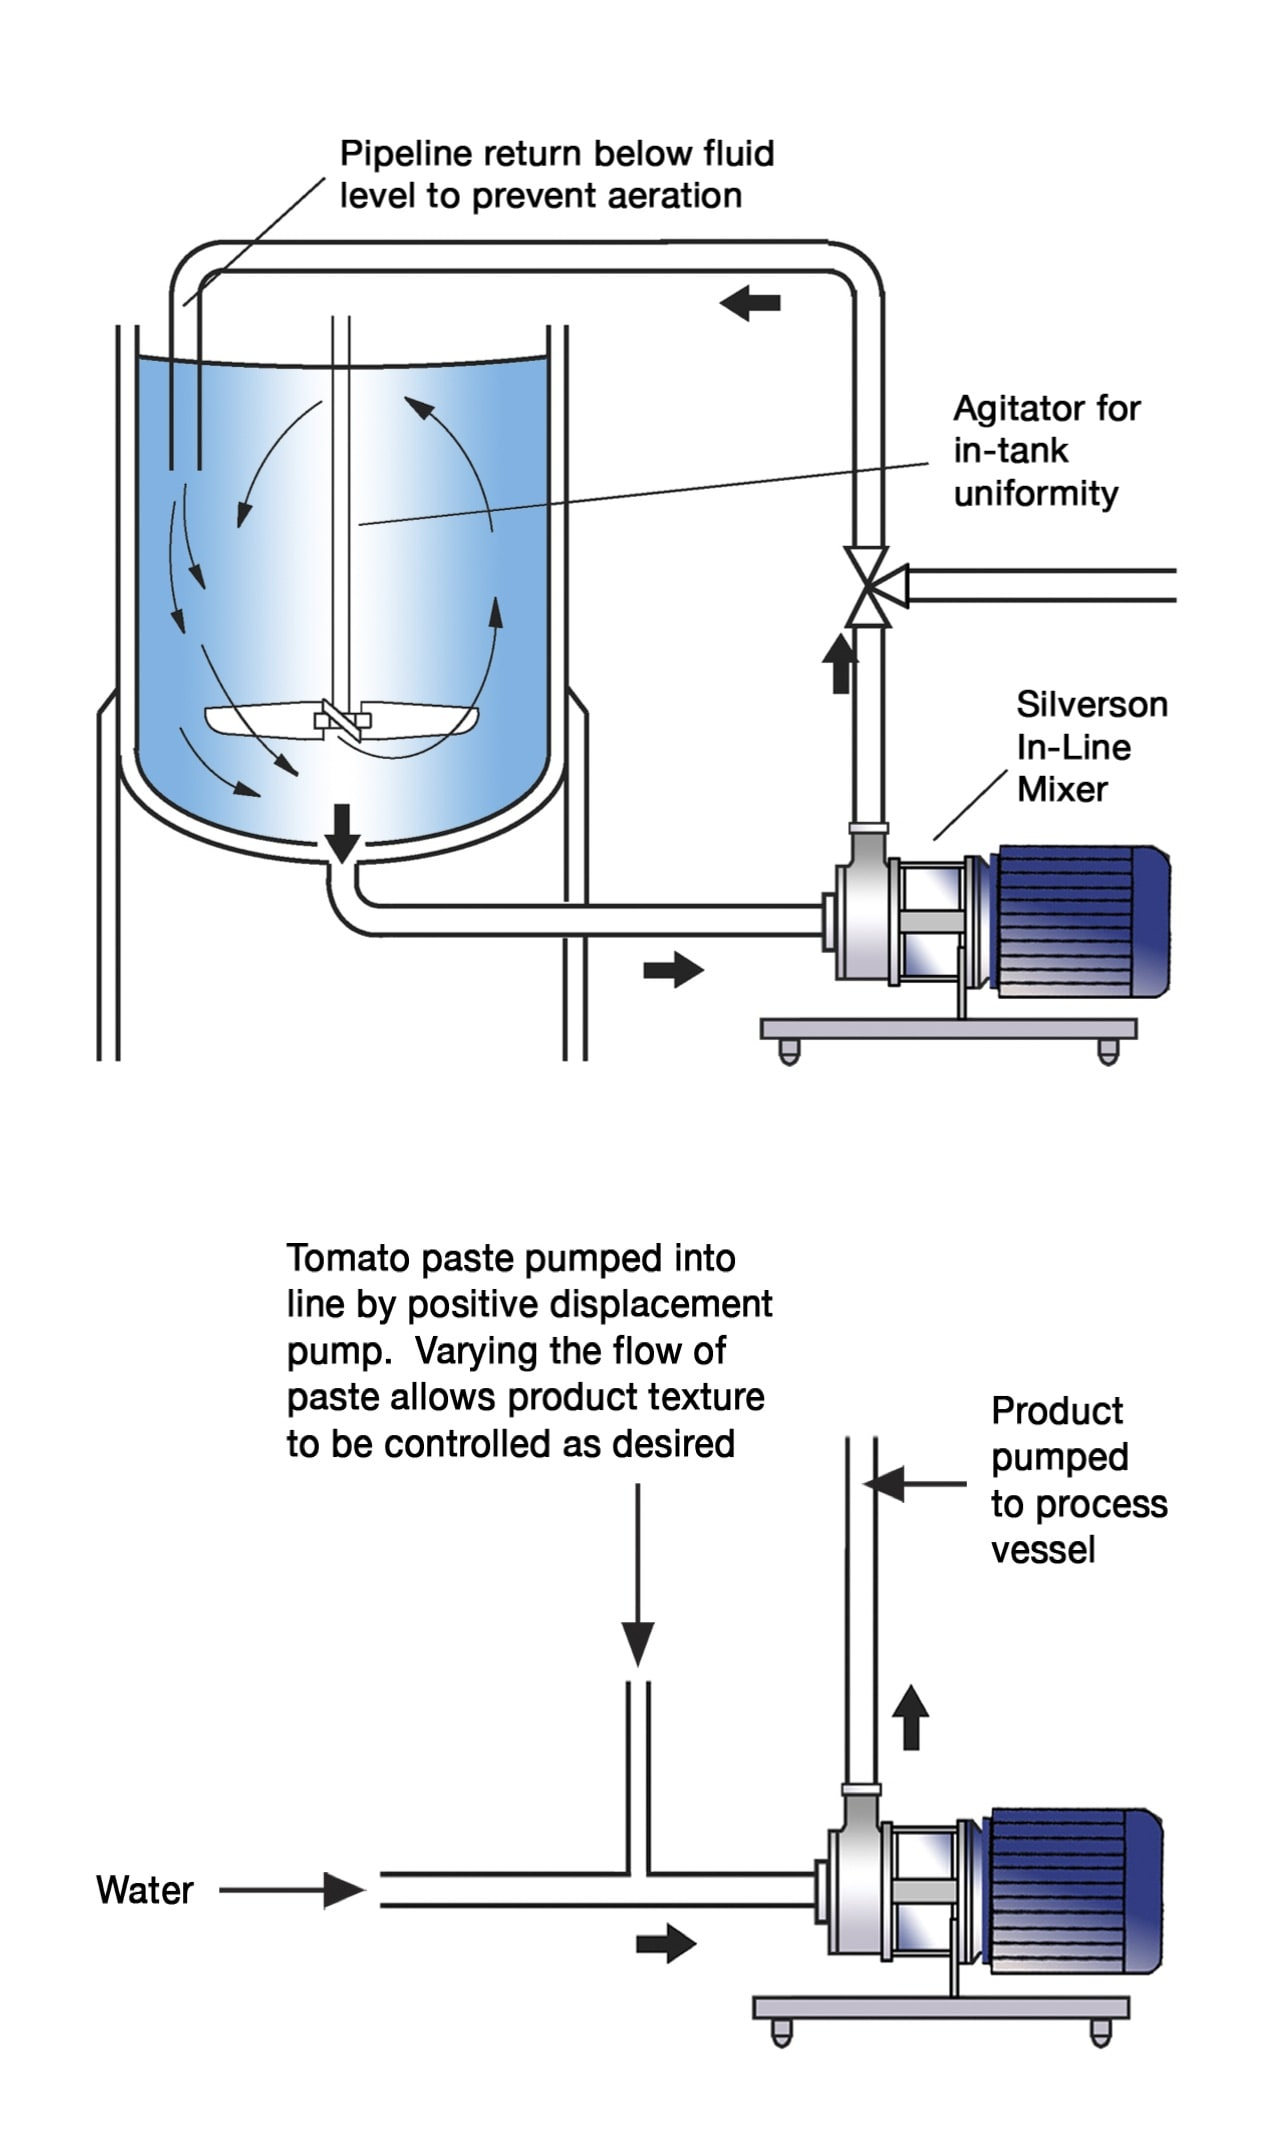 Manufacture of tomato sauces and ketchups us high shear in line mixers ccuart Images